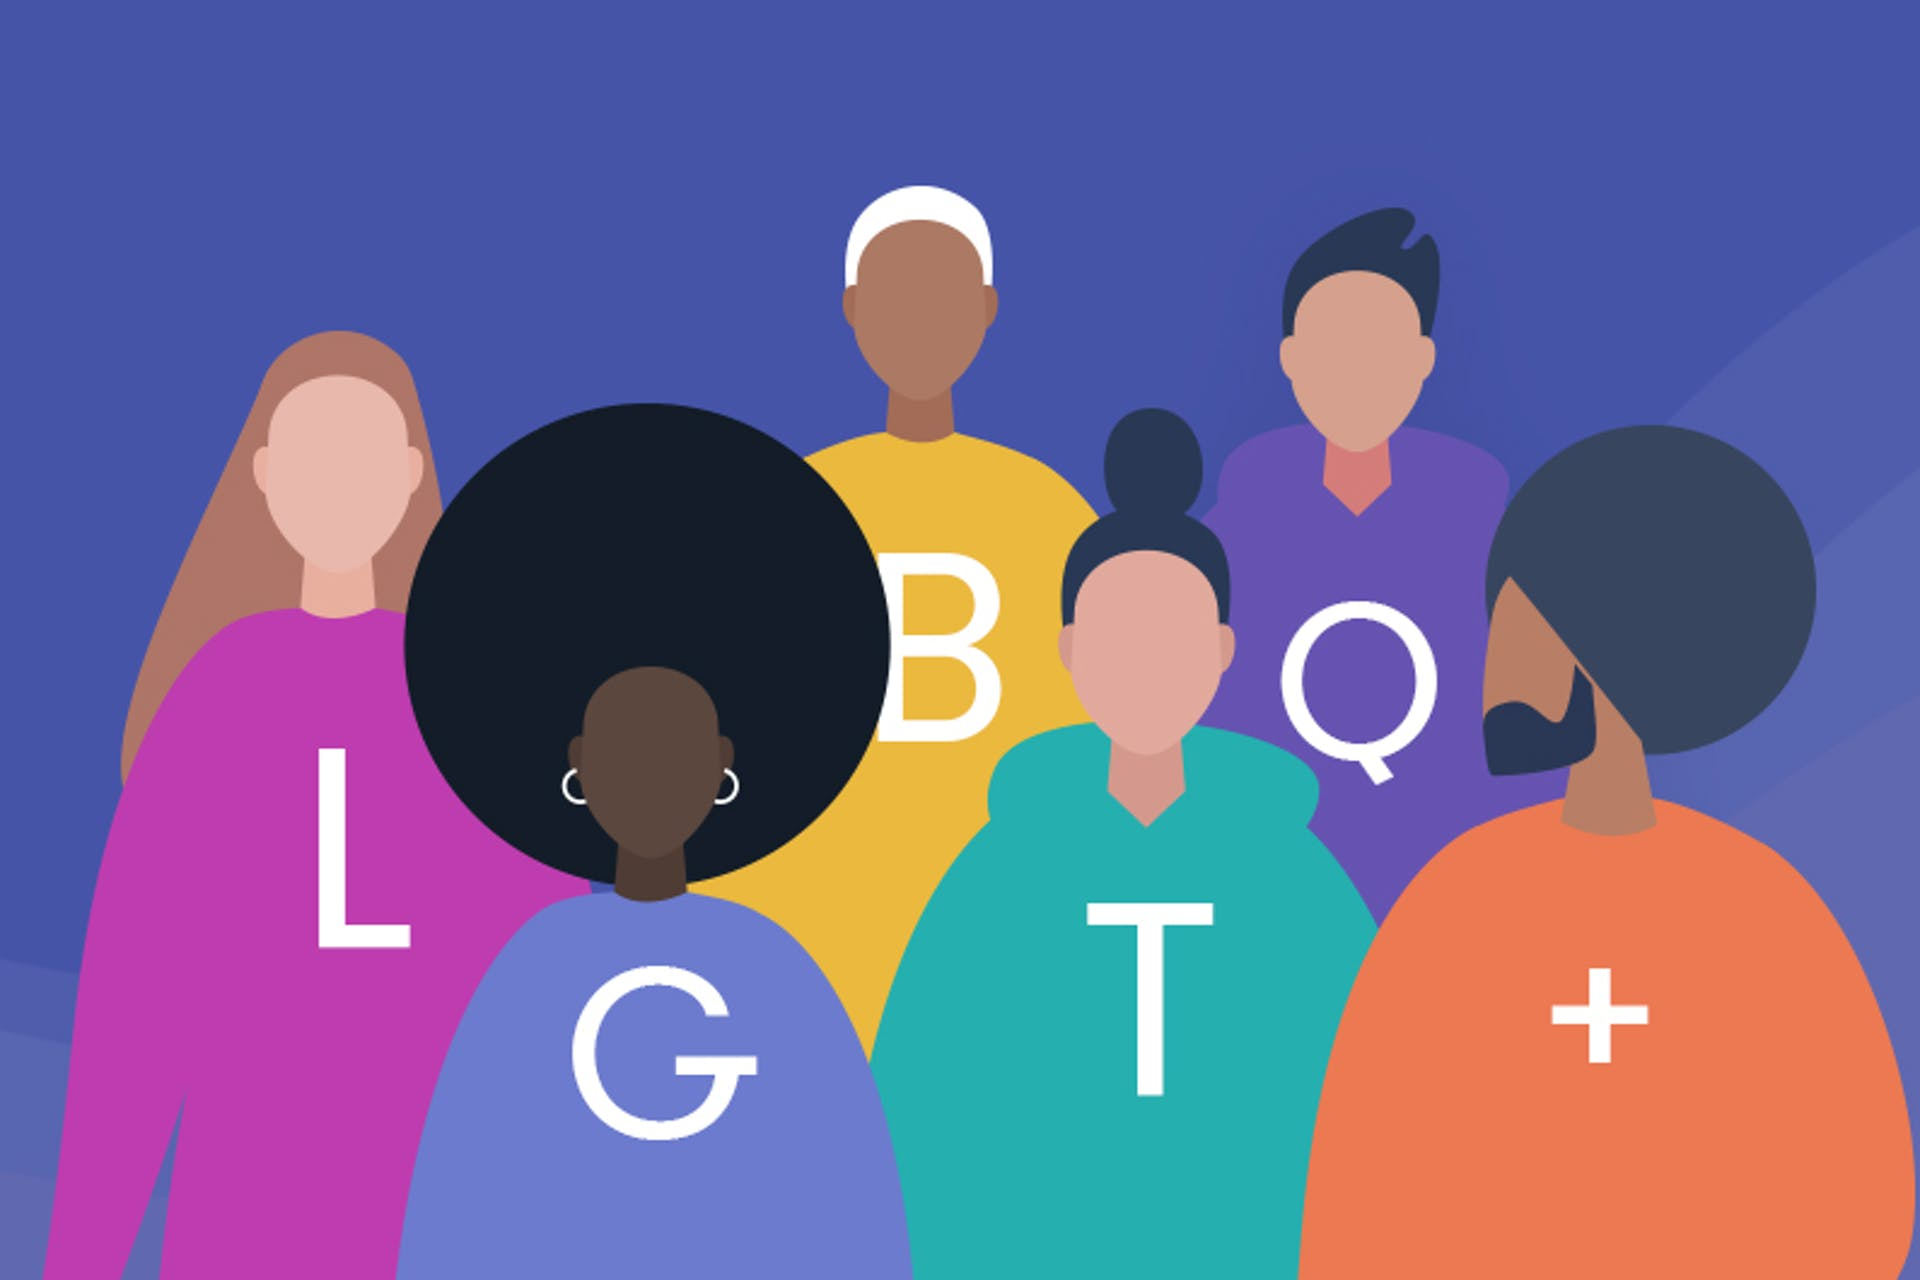 A diverse group of people with each wearing a sweater with one of the letters from the acronym LGBTQ+ on the front.